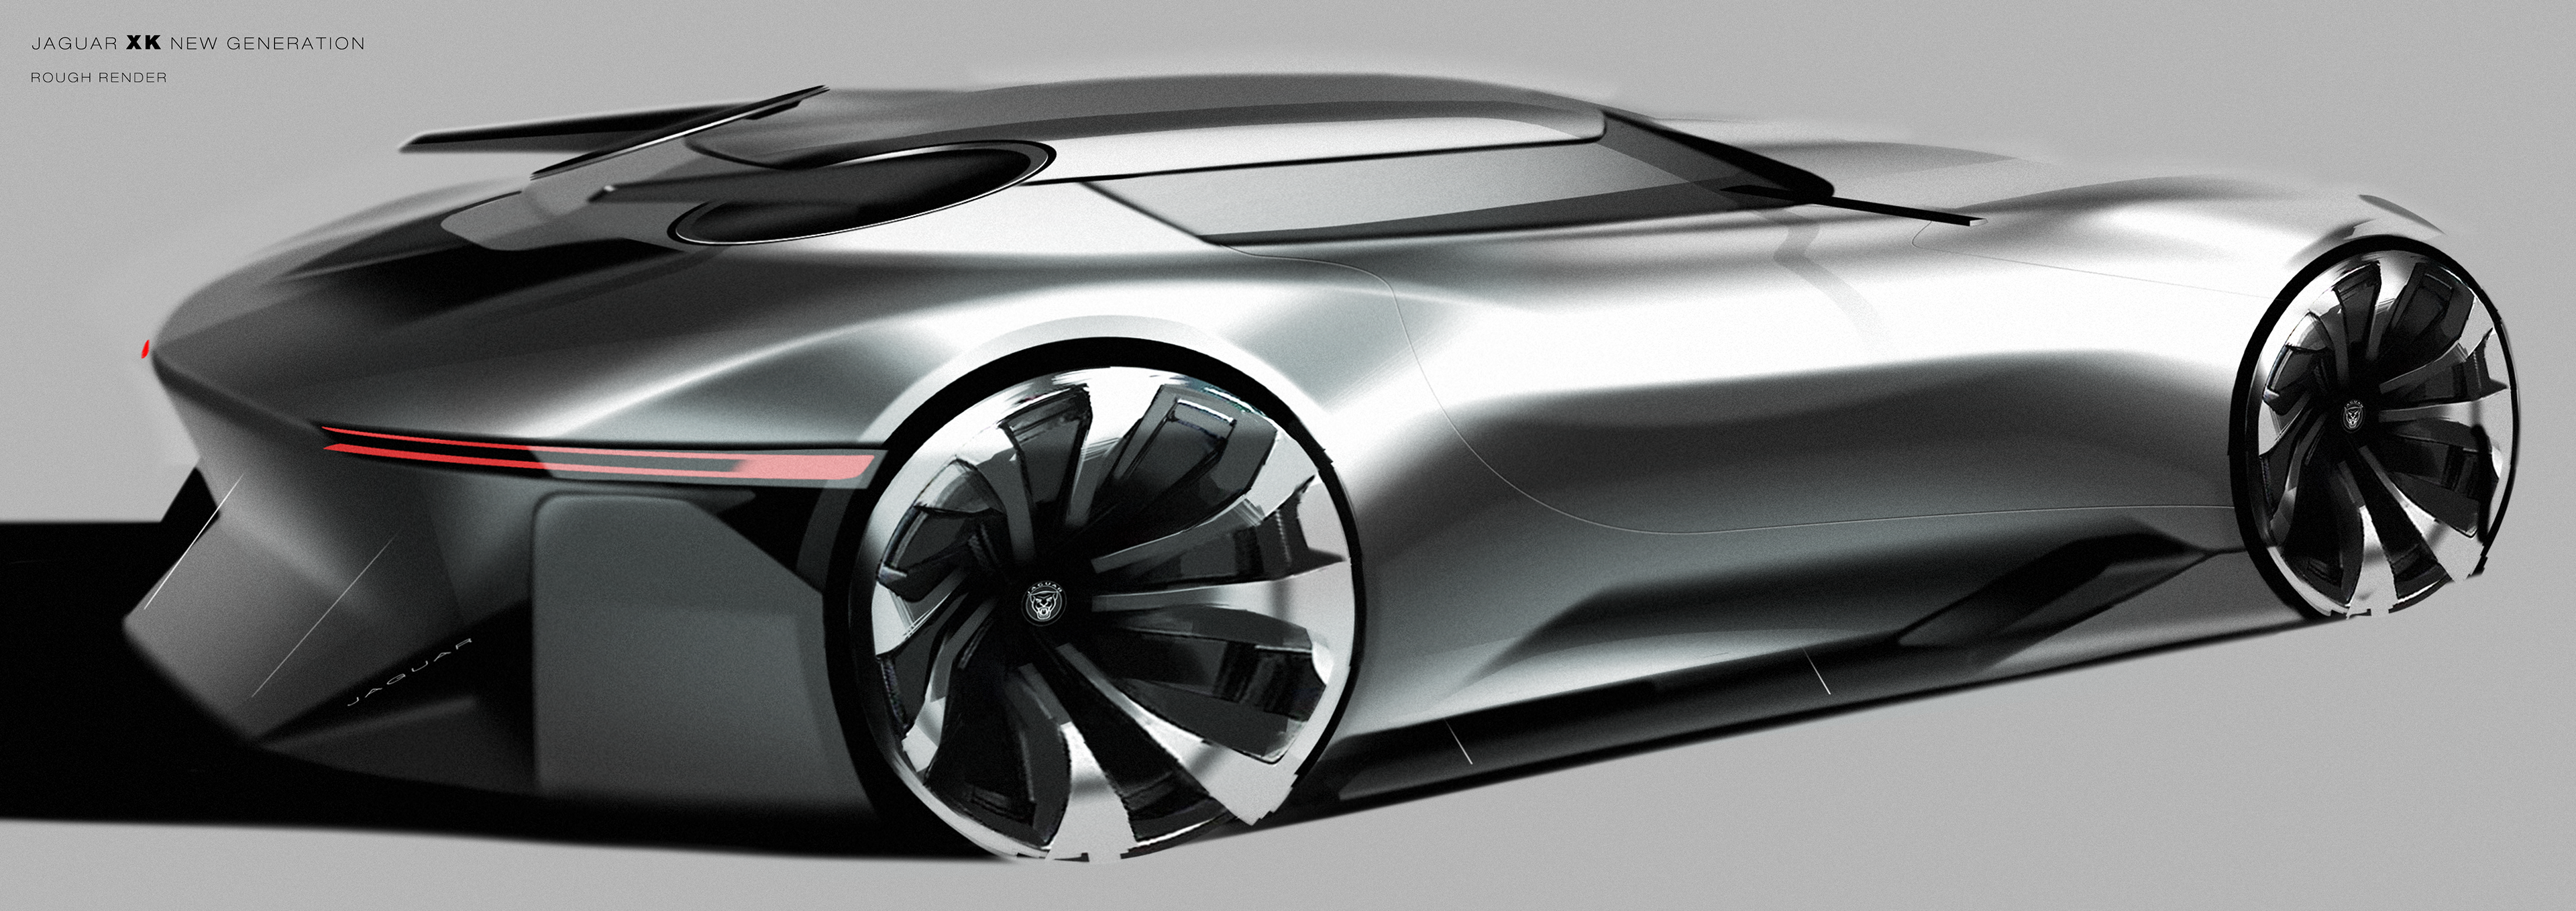 Black And White Png Of A Car - Fast Car PNG Black And White Transparent Fast Car Black And White ...